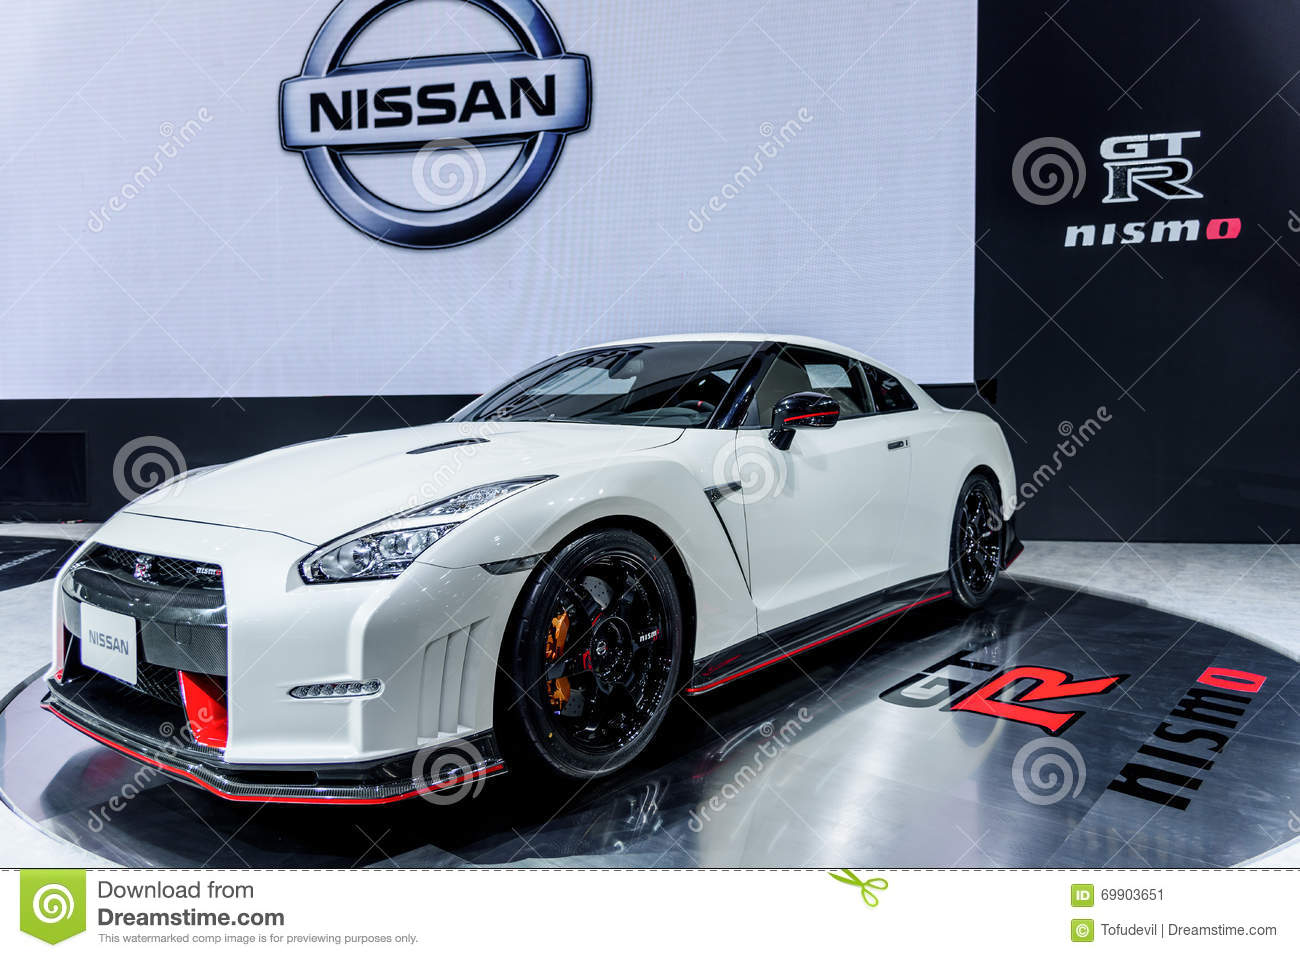 Nissan 2016 Gt R Nismo Limited Availability Editorial